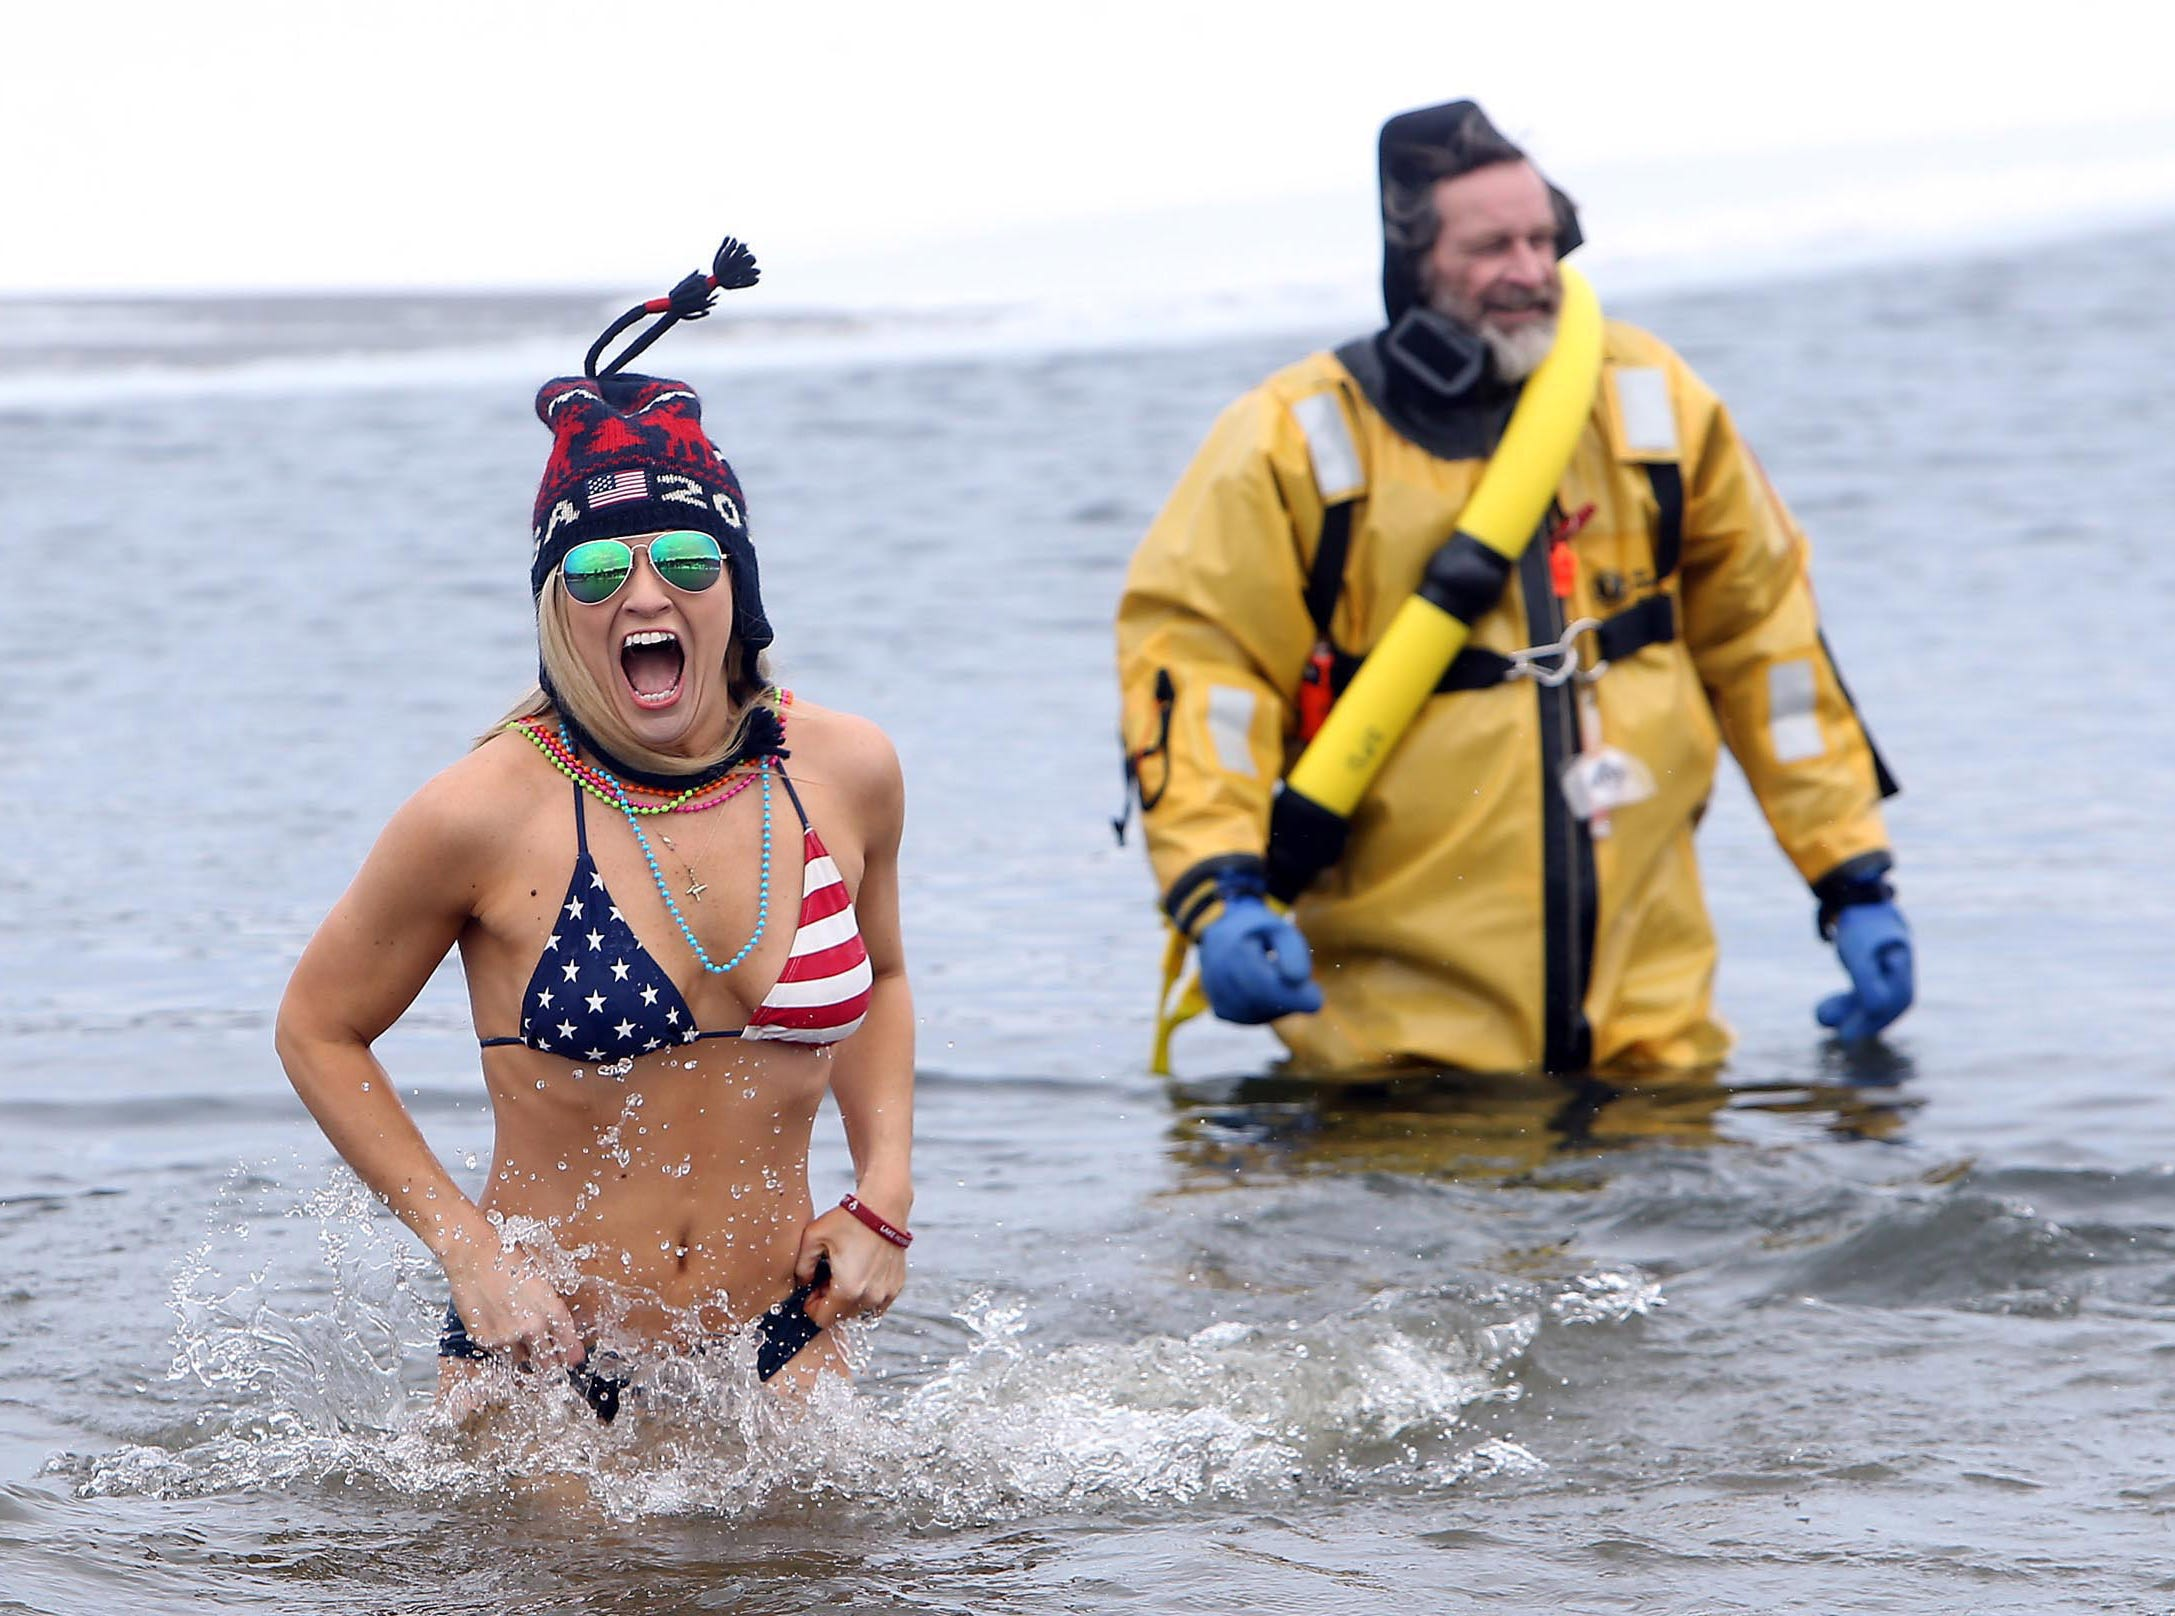 February 12, 2017--Amanda Glass of Metuchen, NJ lets out a yell as mild weather brought out hundreds to the 8th Annual Leap in the Lake sponsored by the Lake Hopatcong Elks #782 for Our Special Kids at Hopatcong State Park.